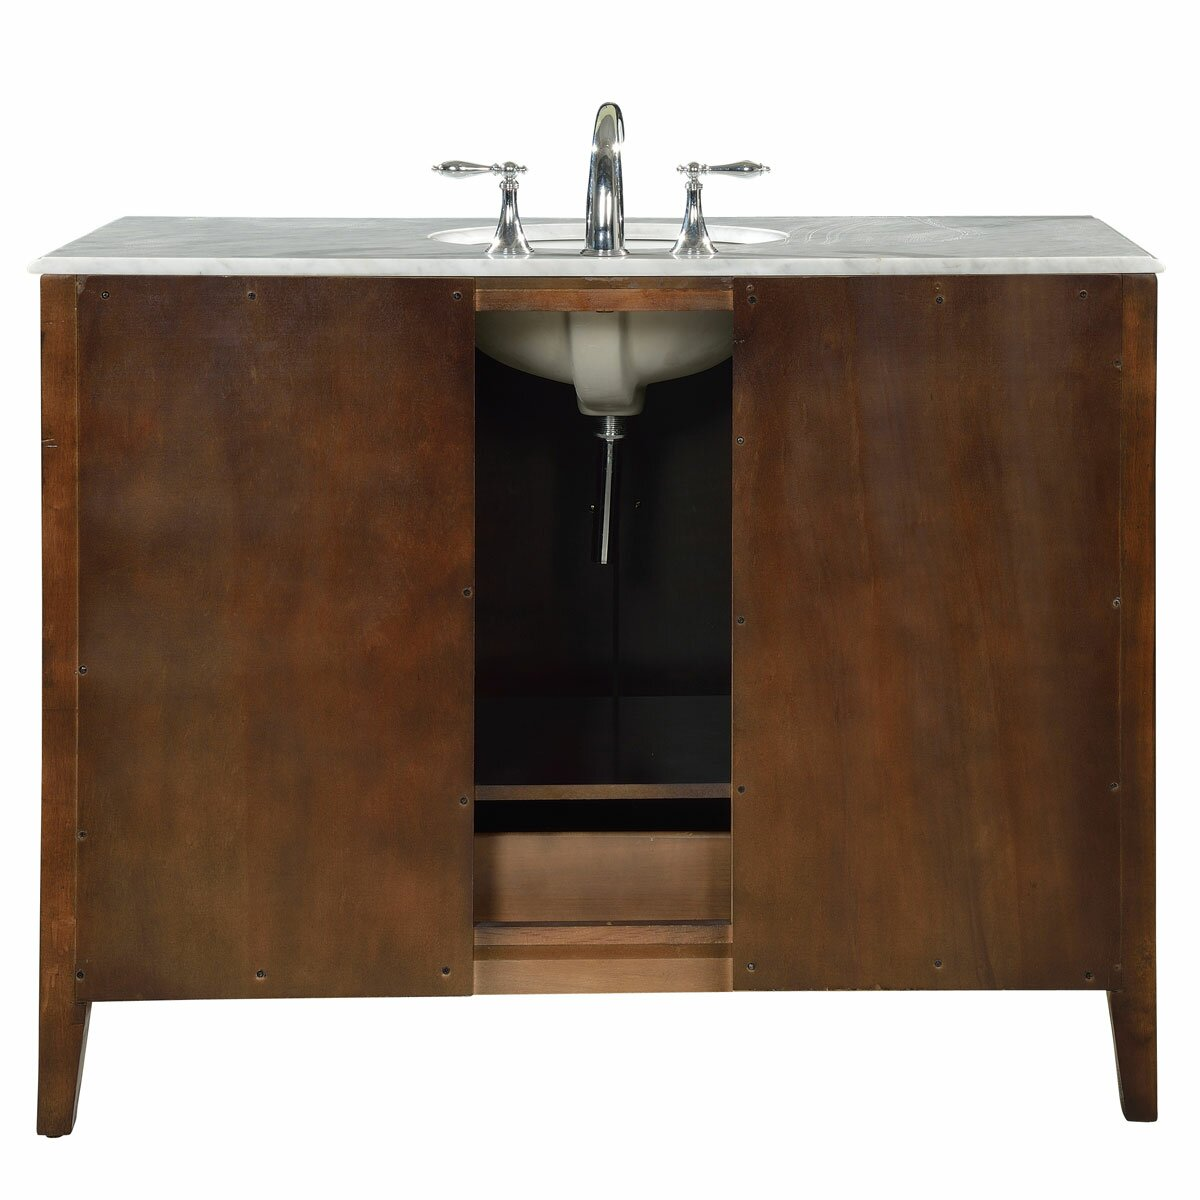 Bathroom single sink cabinets - Silkroad Exclusive 48 Quot Single Sink Cabinet Bathroom Vanity Set